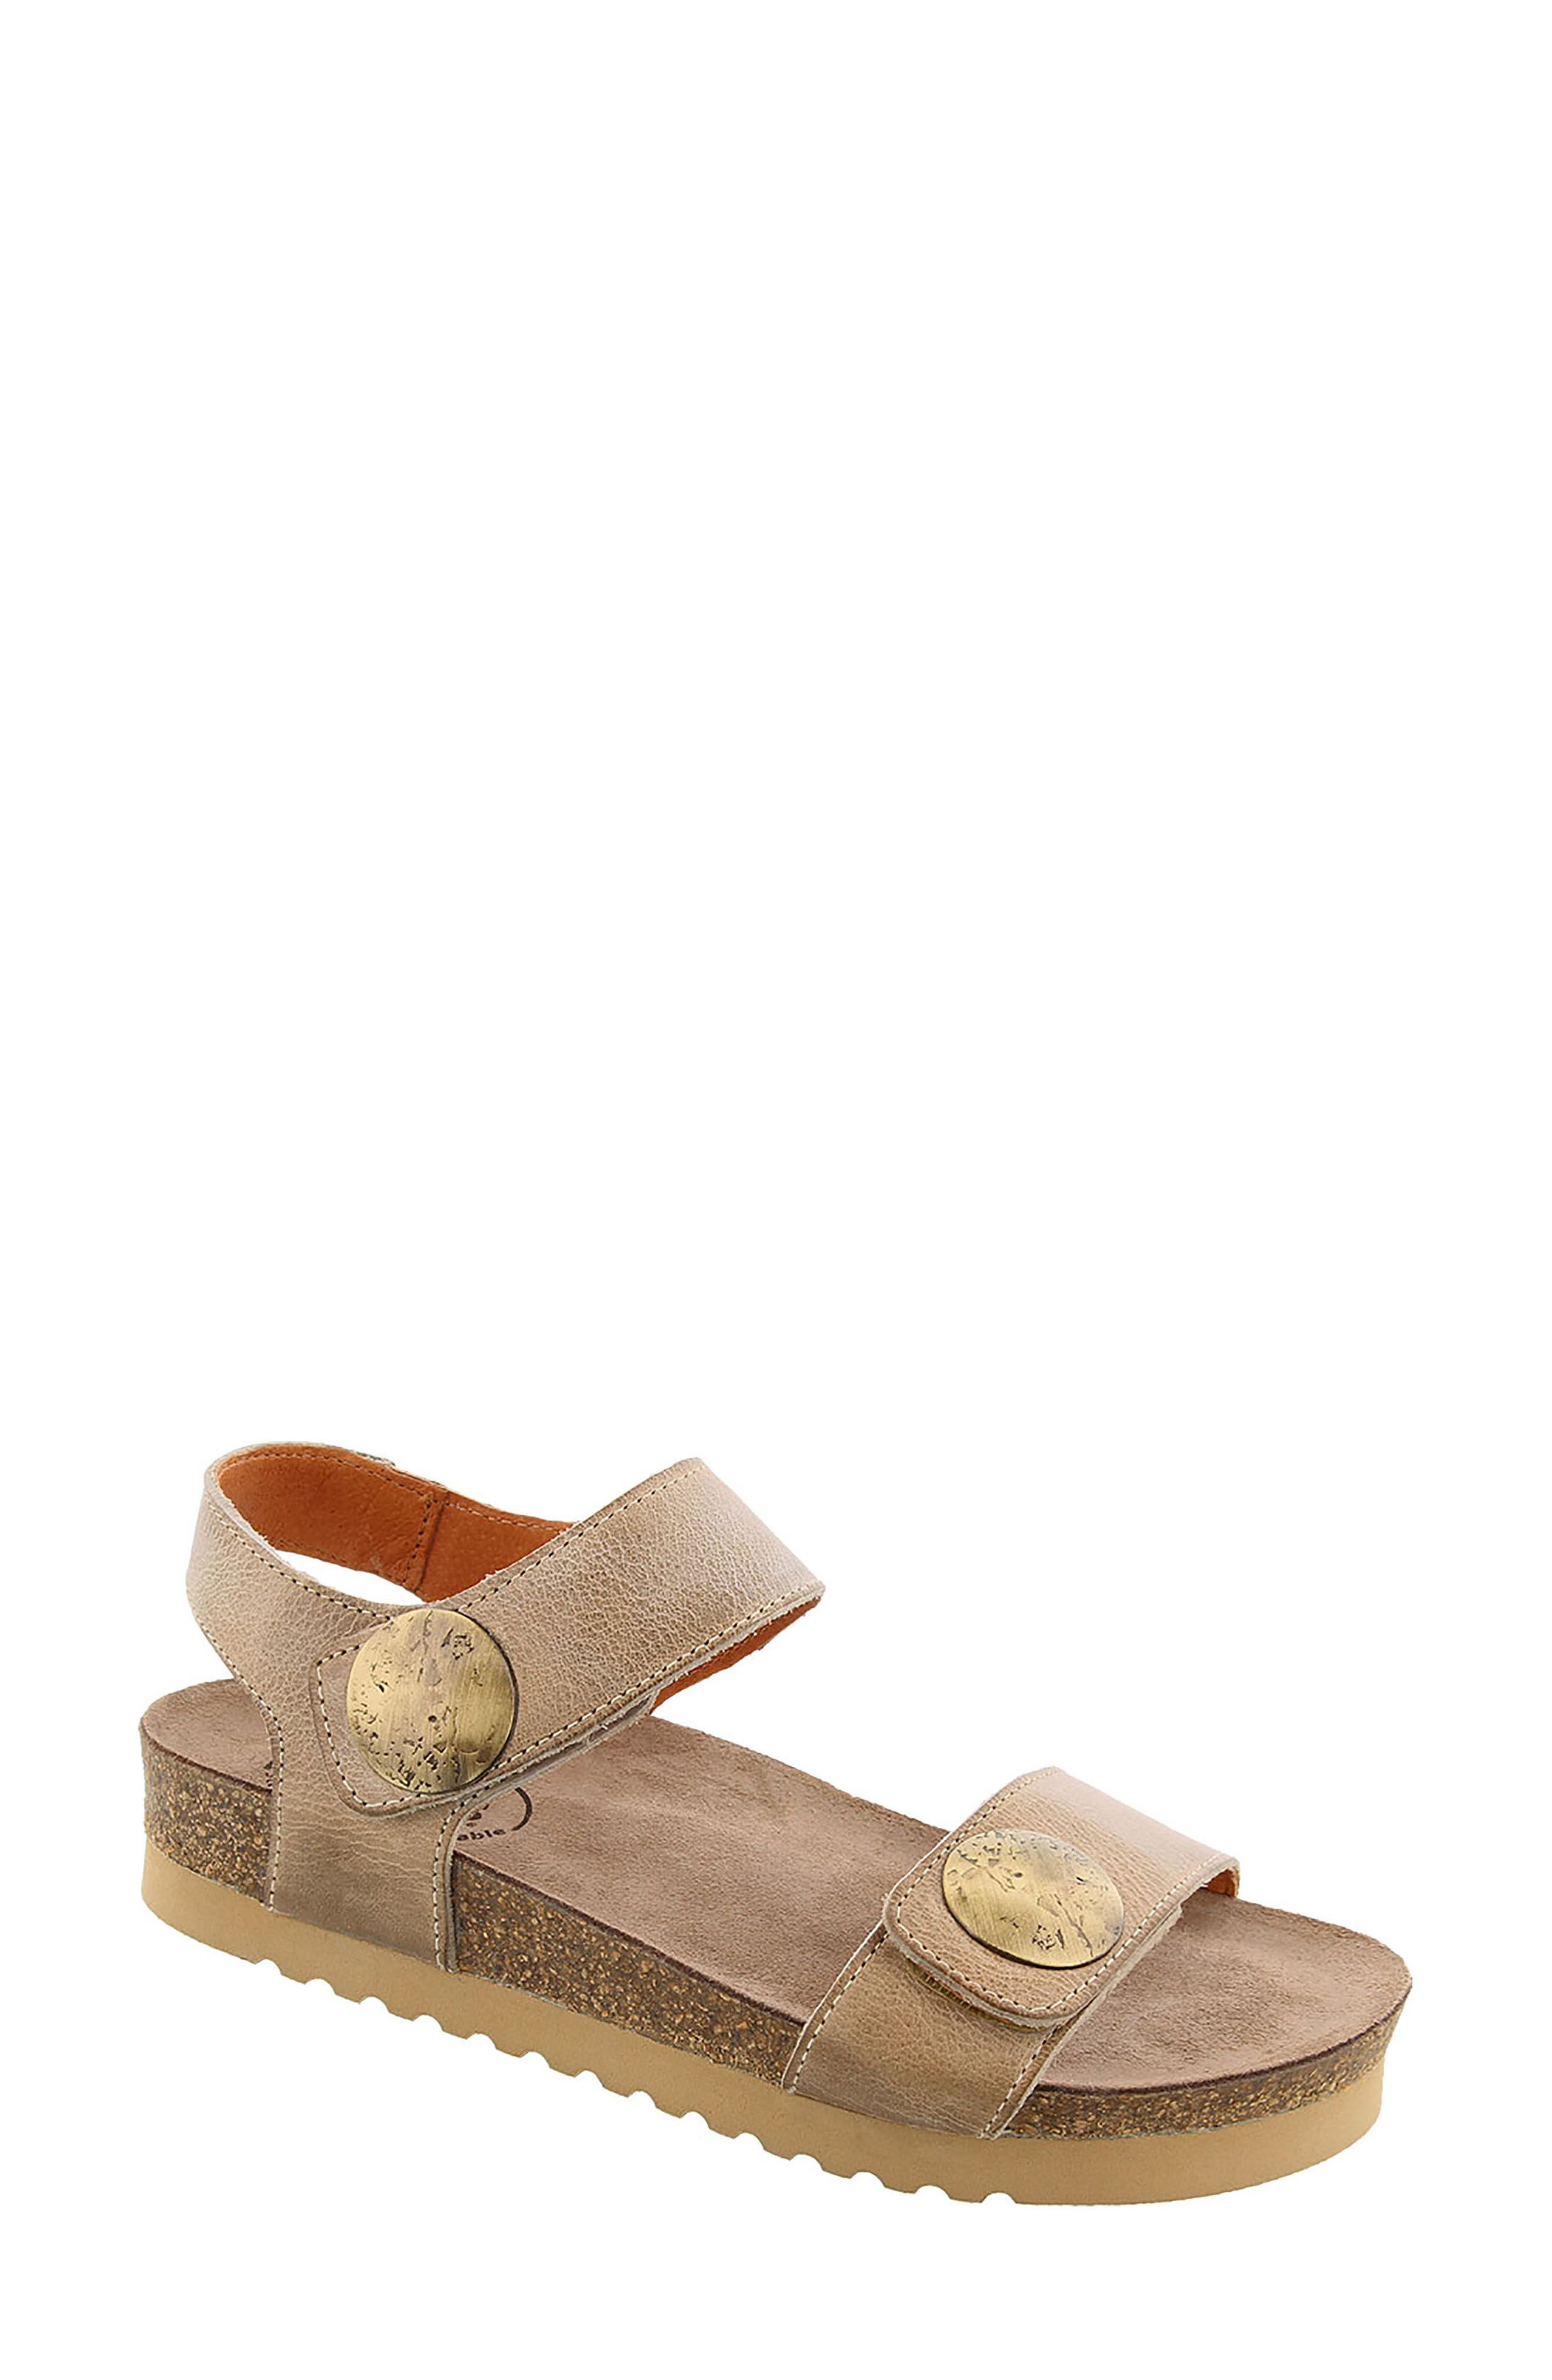 Luckie Sandal,                             Main thumbnail 1, color,                             Taupe Leather